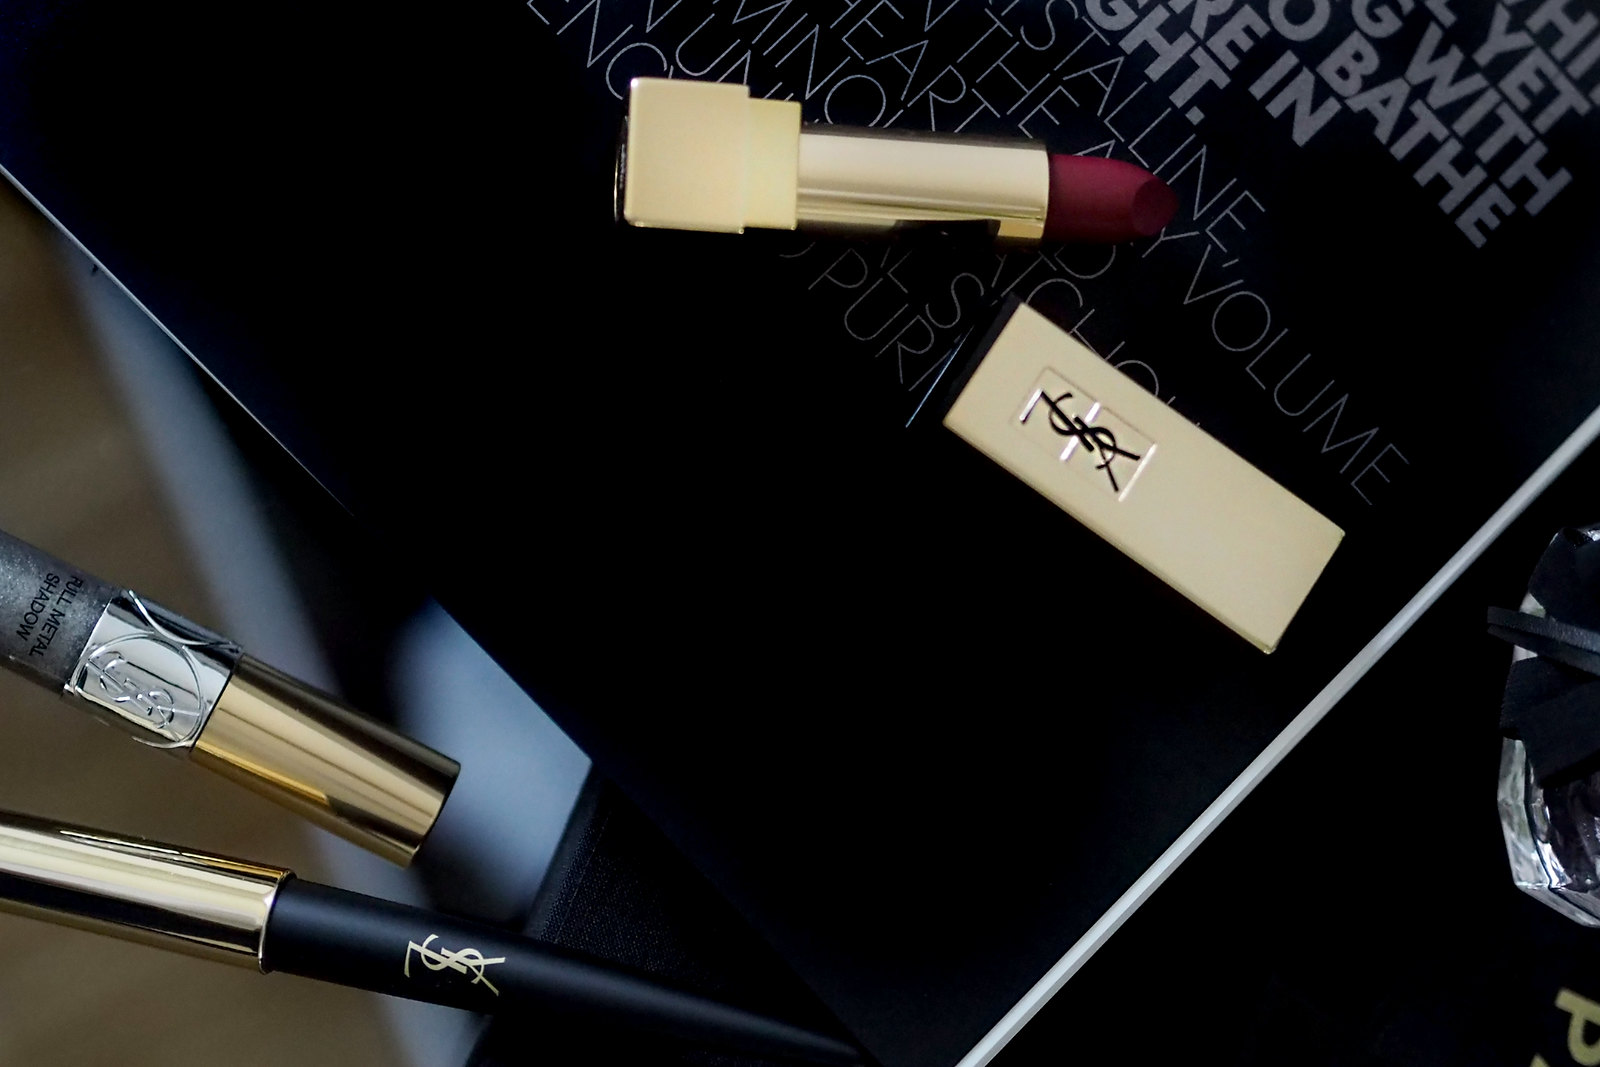 ysl saint laurent les mats make-up lipstick love photography dark beautiful rocknroll amu blogger beautyblogger germany berlin dusseldorf ricarda schernus beautyblog cats & dogs modeblog 3